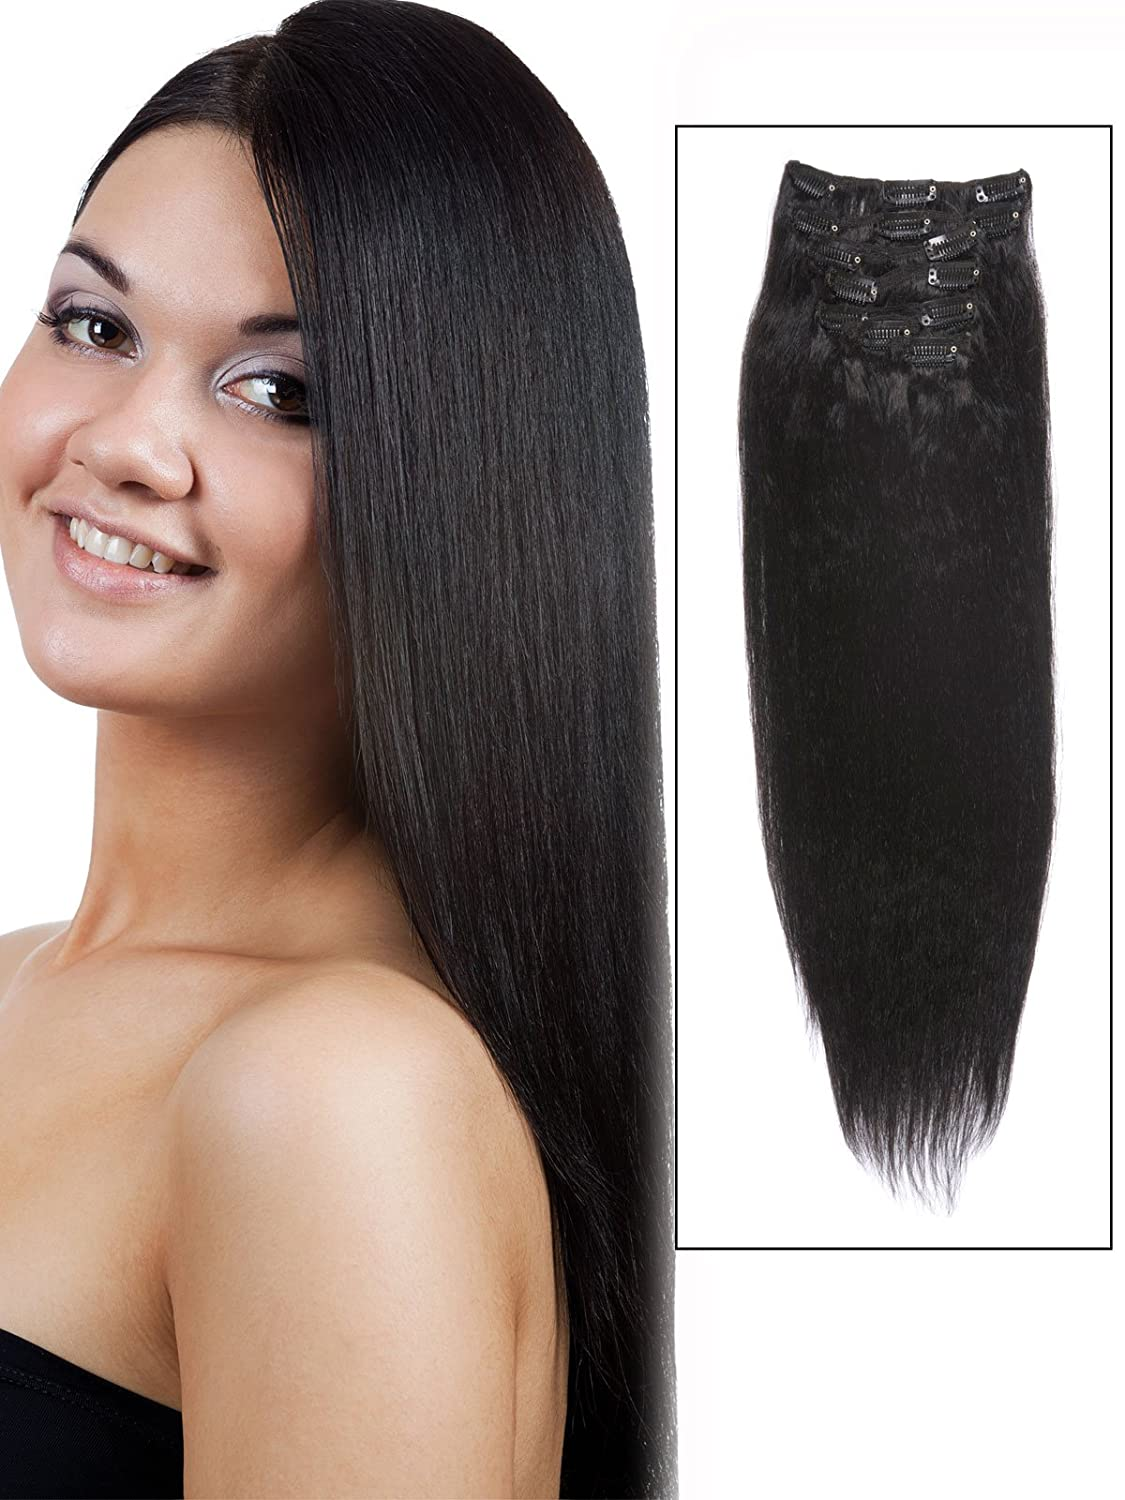 Amazon abhair cheap real short clip in remy human hair amazon abhair cheap real short clip in remy human hair extensions 14 inch natural blackoff black 7 piece 60g yaki for women beauty hair replacement pmusecretfo Image collections